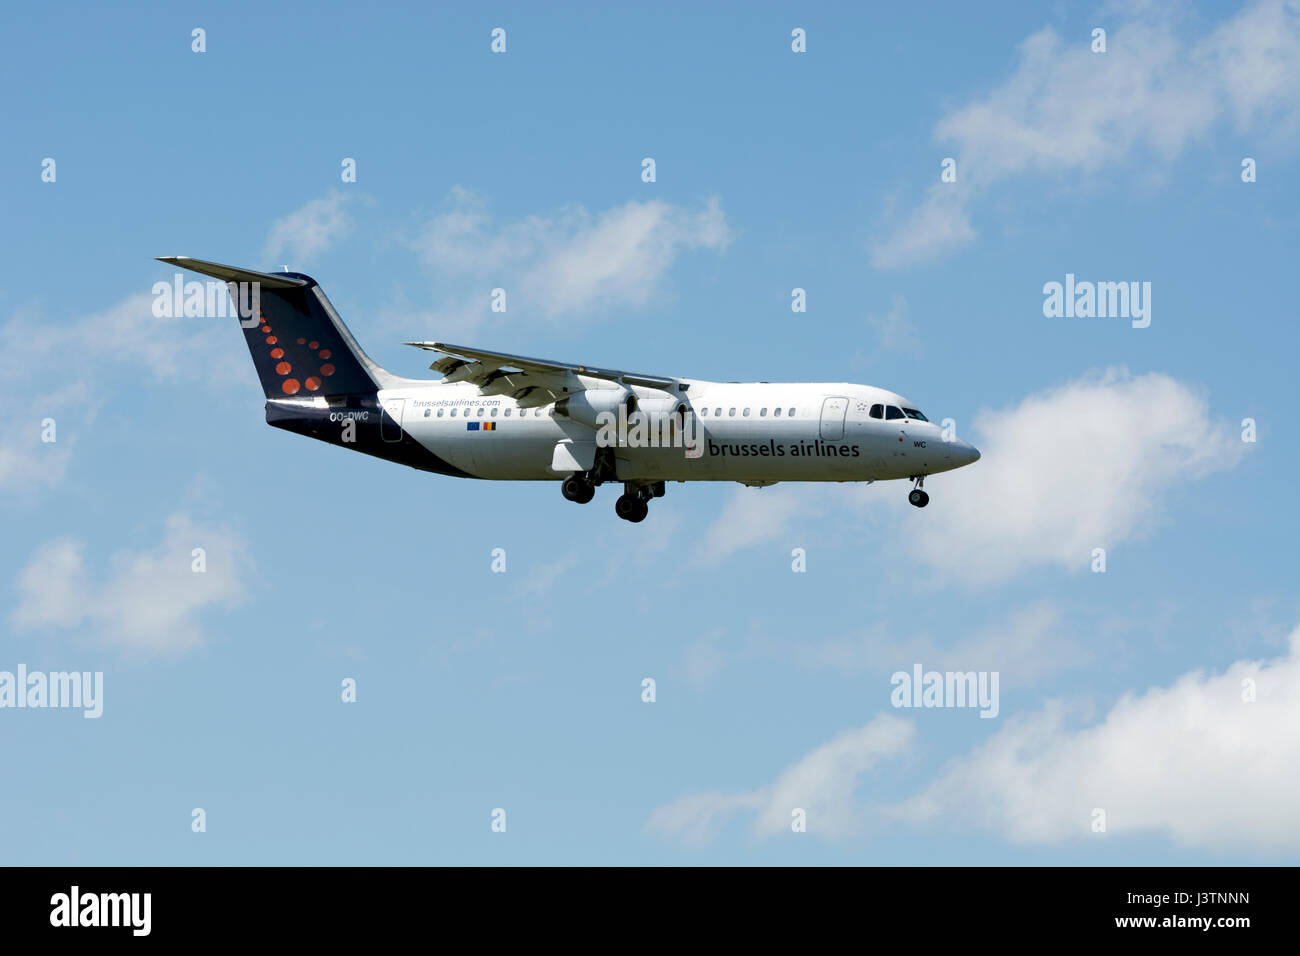 A Brussels Airlines Avro RJ100 landing at Birmingham Airport, UK - Stock Image